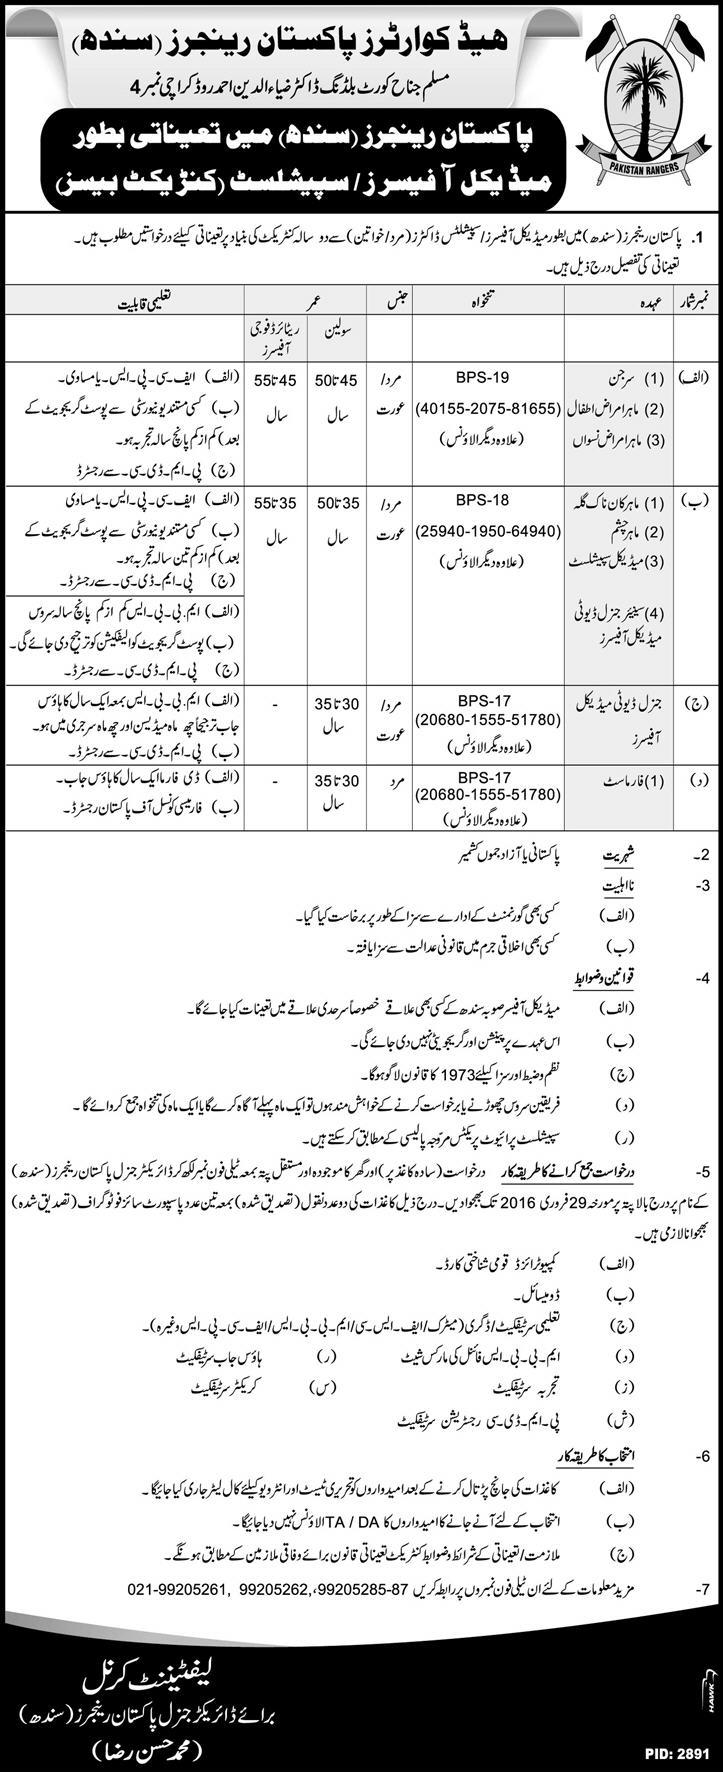 rangers sindh jobs as medical officer specialist application rangers sindh jobs 2016 as medical officer specialist application form date